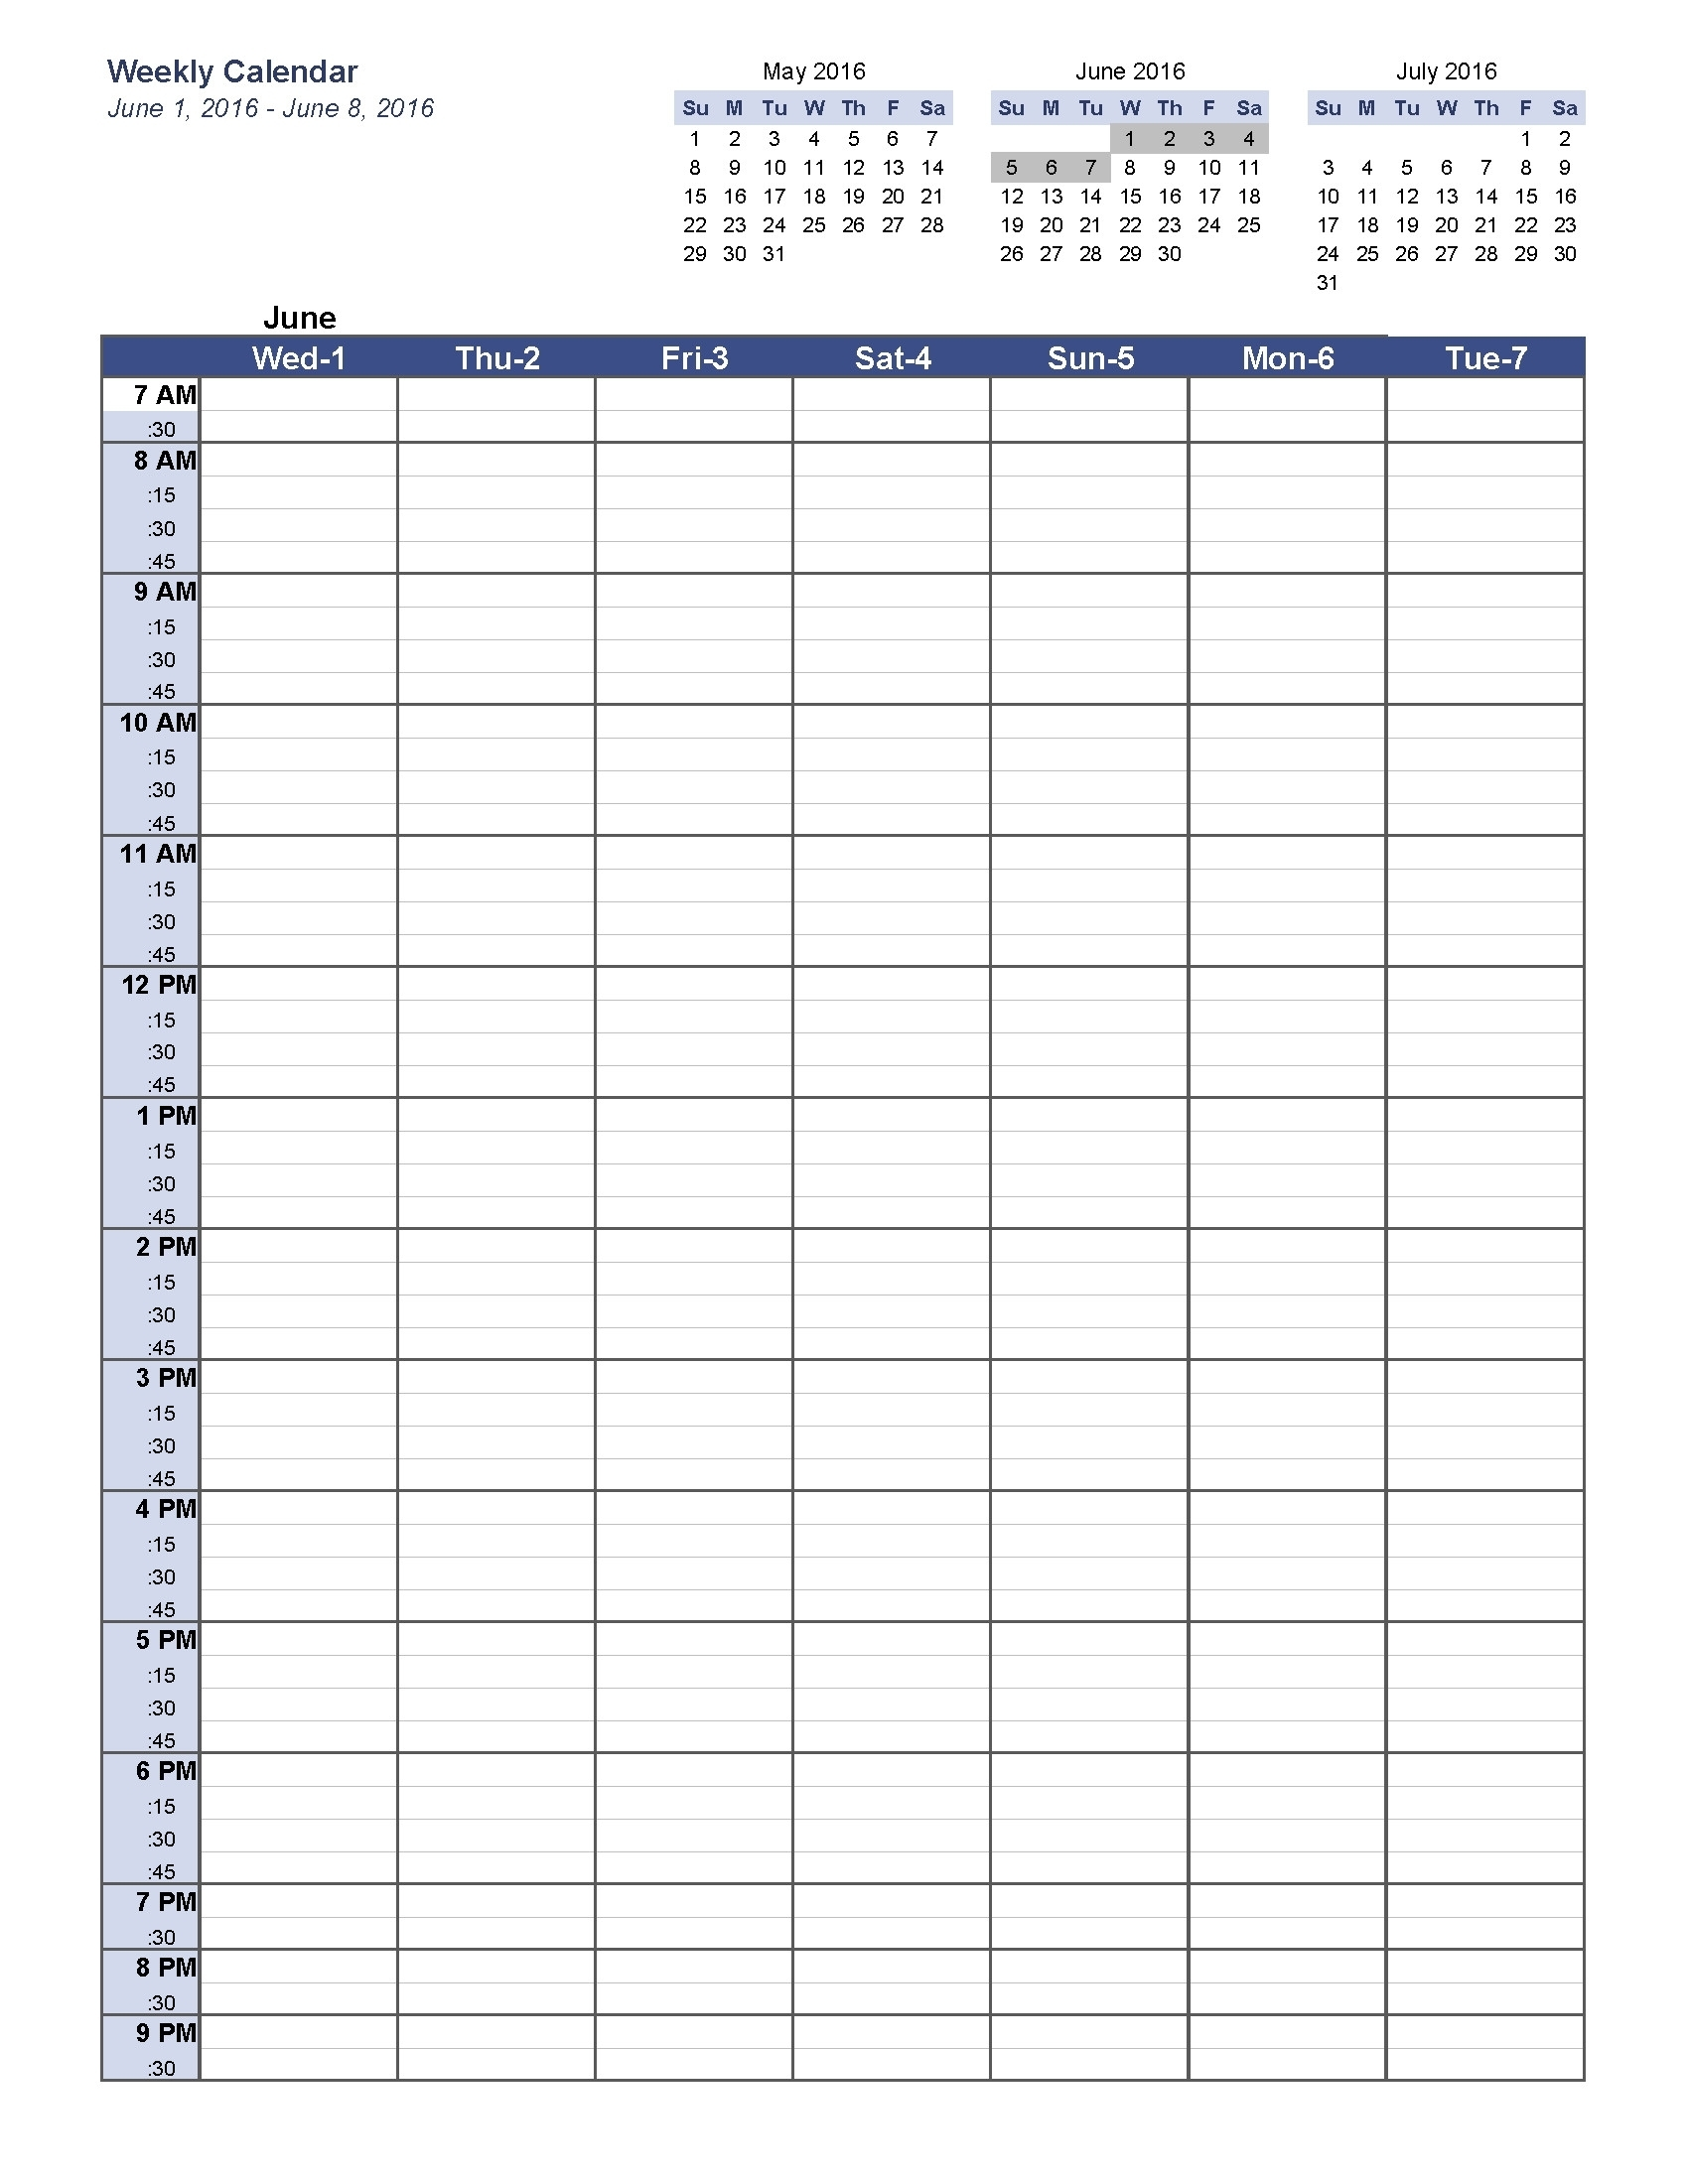 Weekly Planner Printable 5 Am Start | Holidays Calendar Template with regard to Weekly Planner Printable 5 Am Start